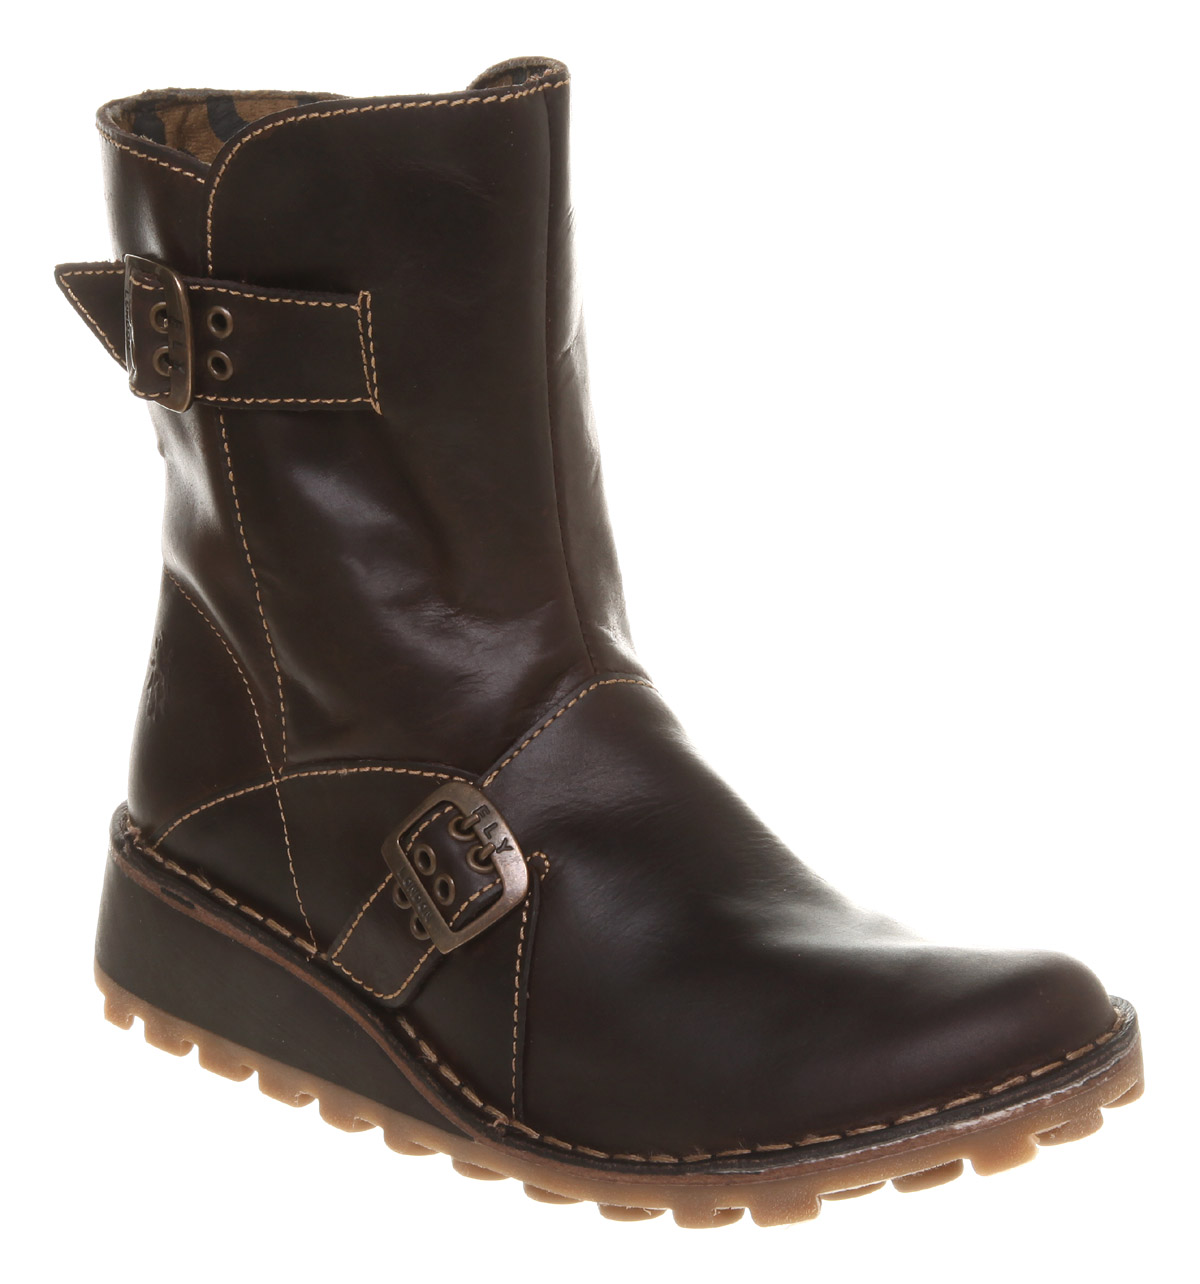 Fly London Boots Clearance Fly London Sandals